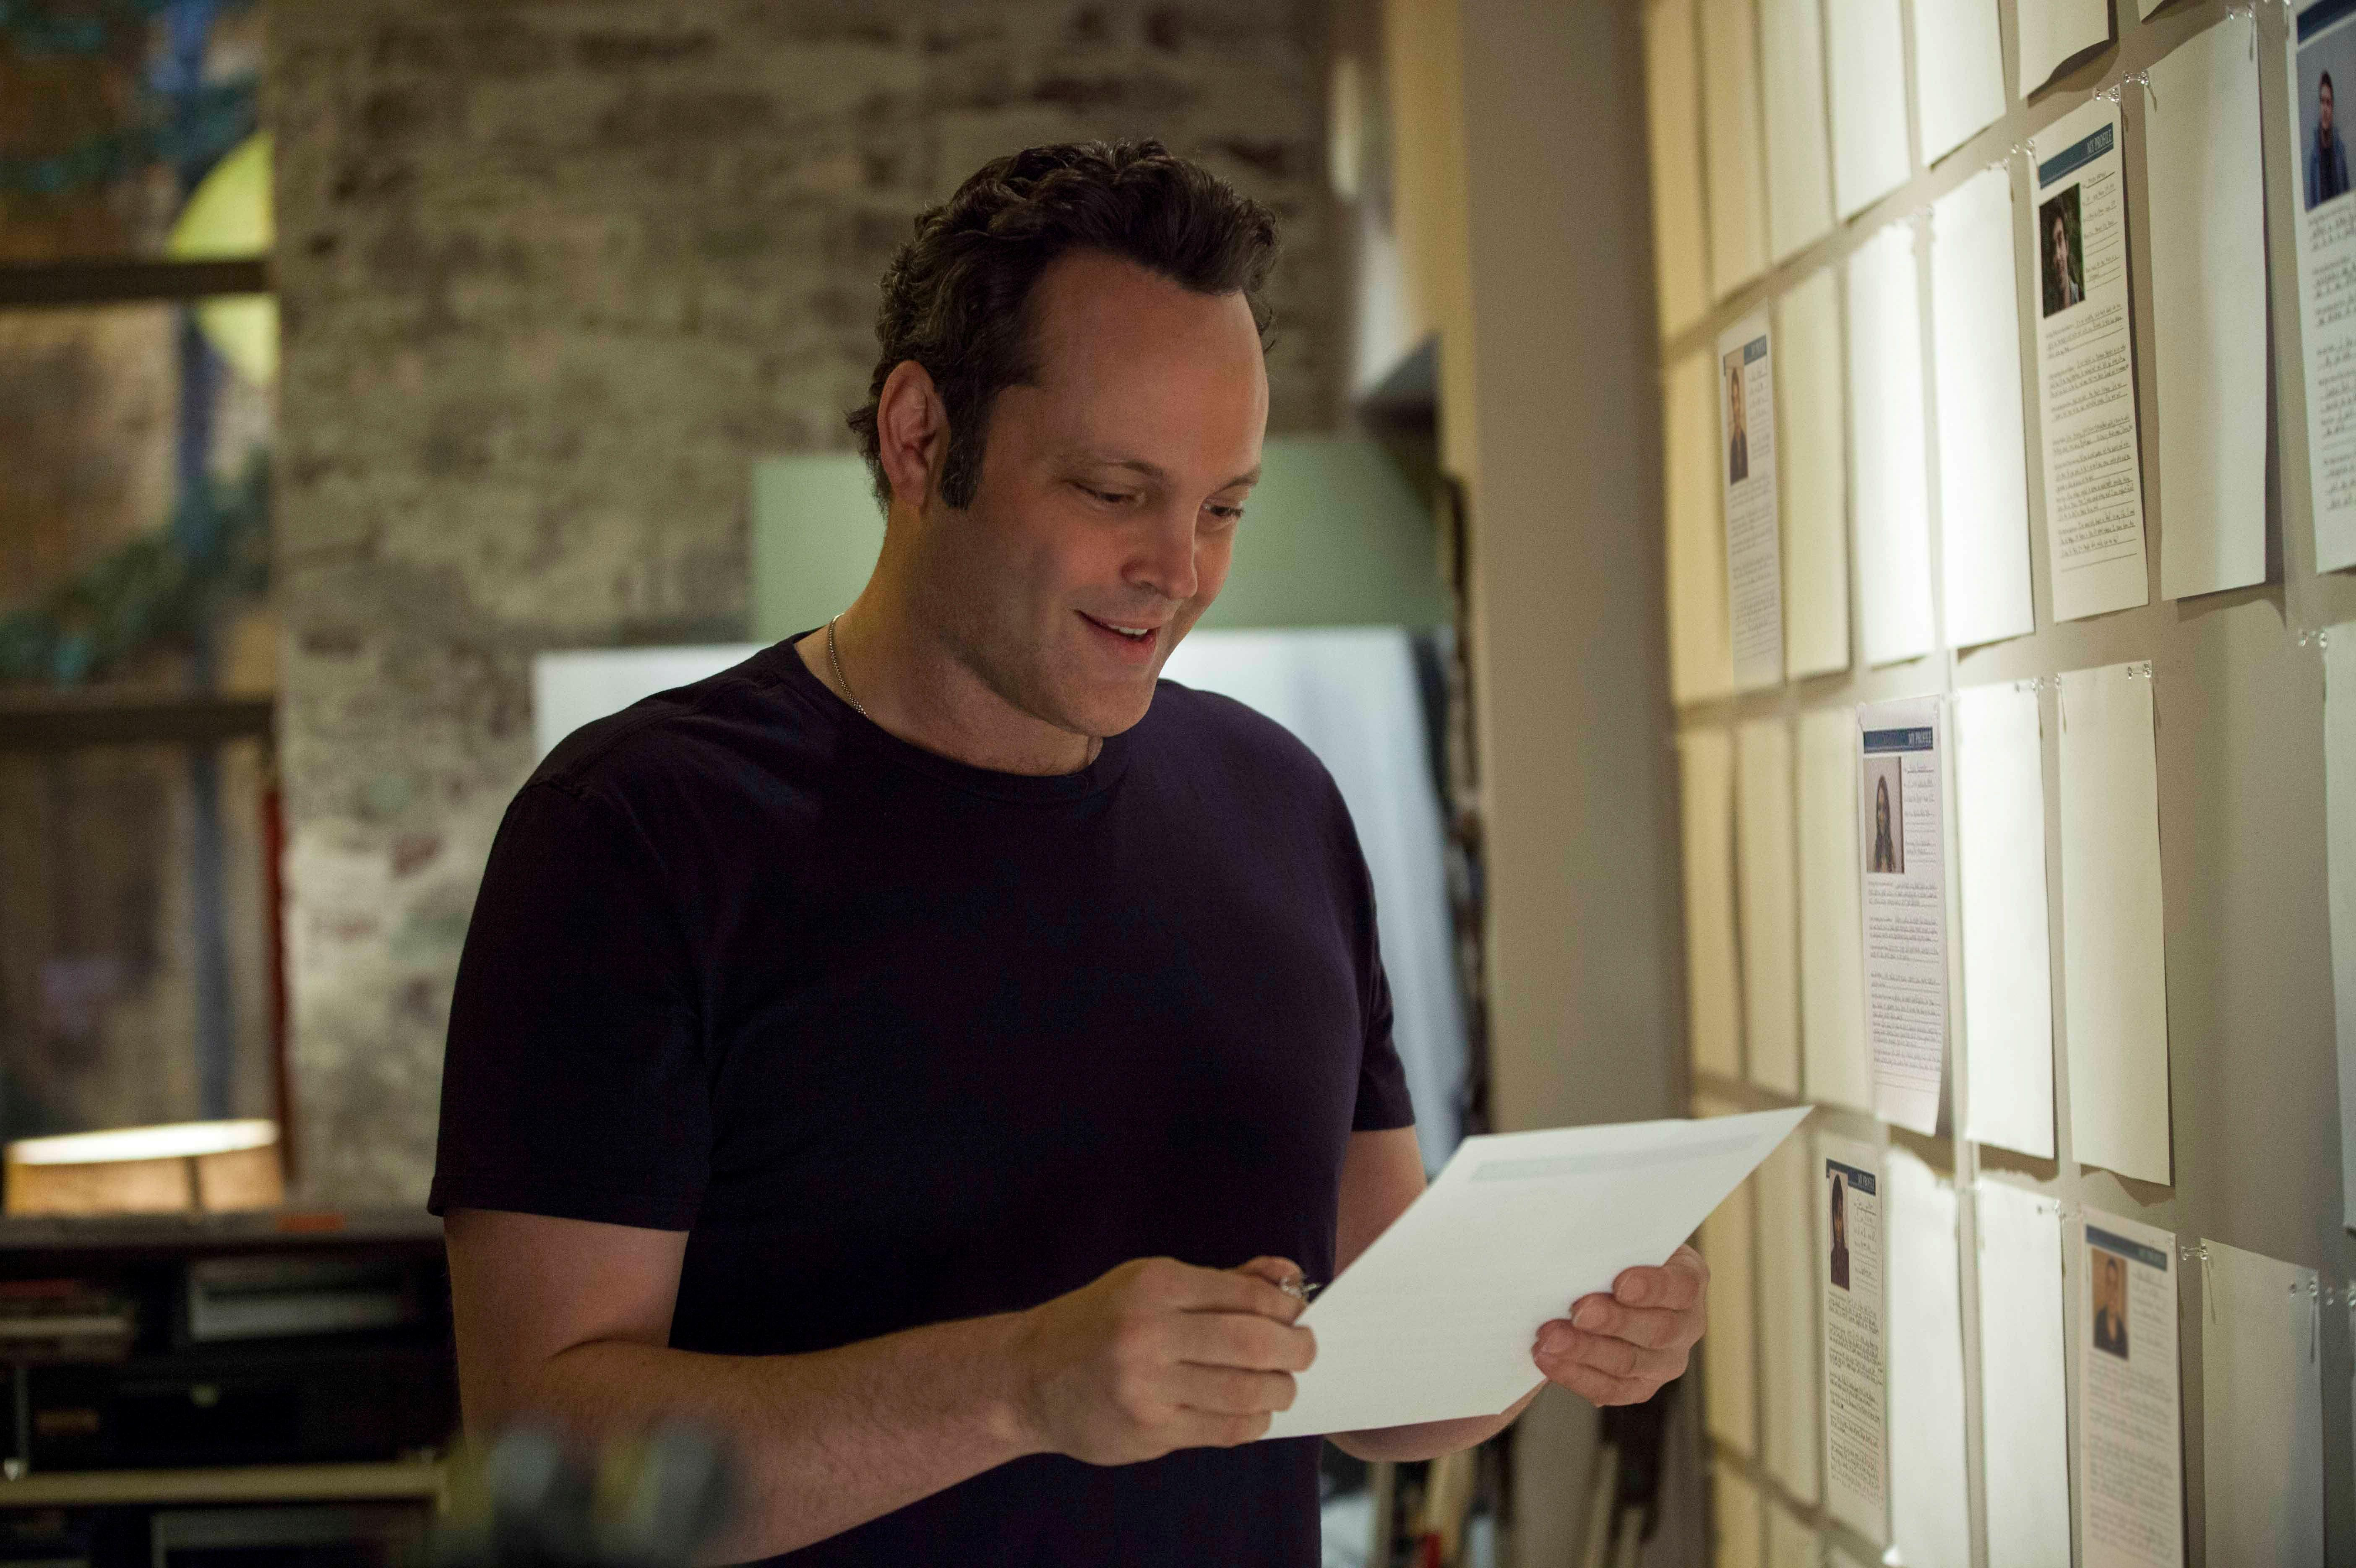 DELIVERY MAN Image. DELIVERY MAN Stars Vince Vaughn and Chris